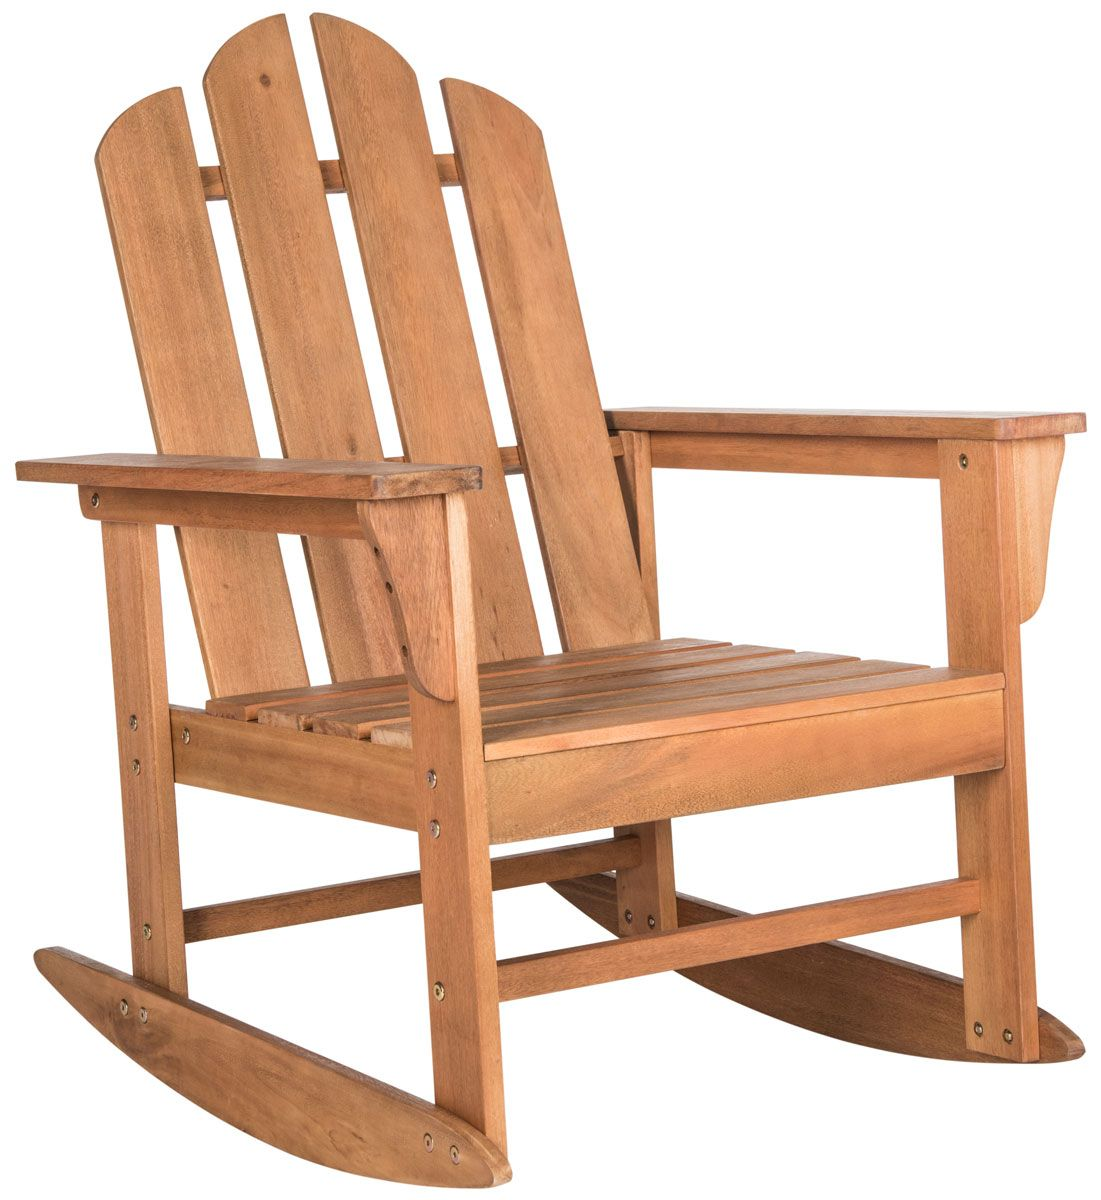 outdoor rocking chair outdoor rocking chairs rocking chairs and woods